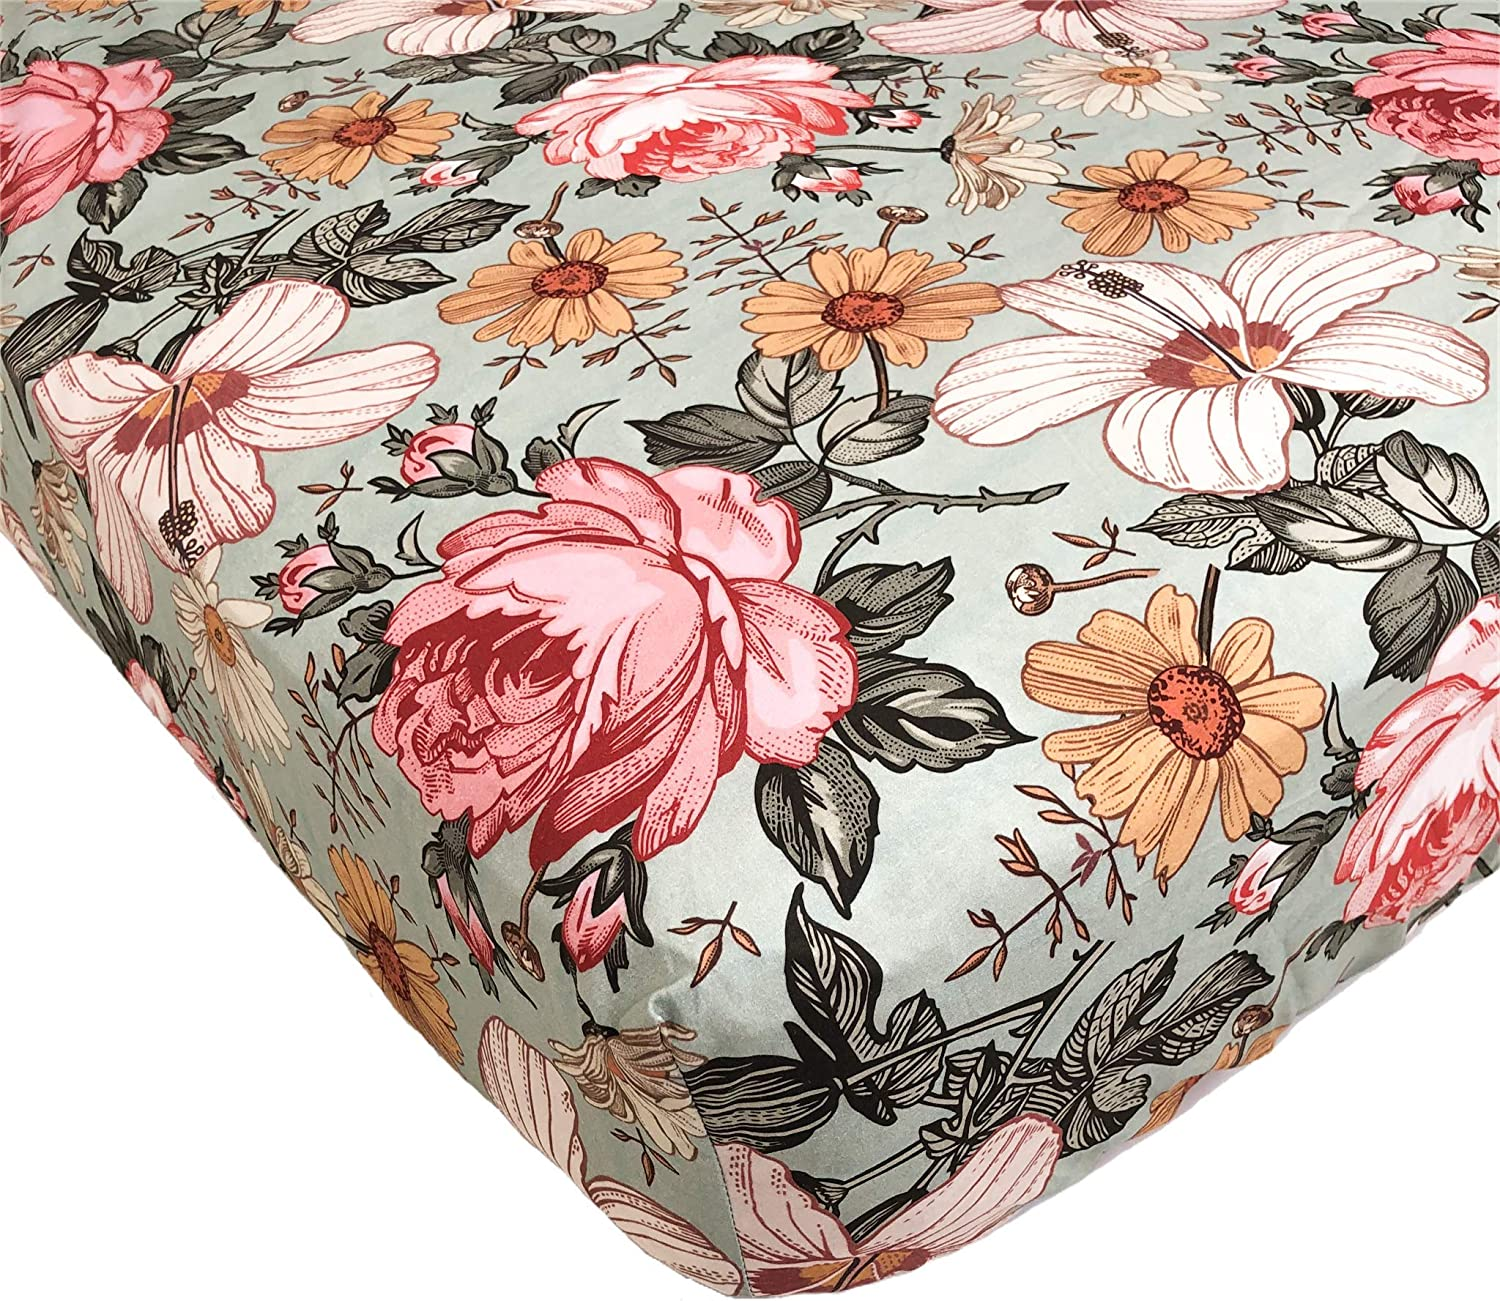 The Mini Scout Garden Floral (Sea Foam) - Woven Cotton Fitted Crib Sheet for Baby Nursery Bedding Inspiration, Infant Bassinet Mattress Cover, Toddler Mattress Bed